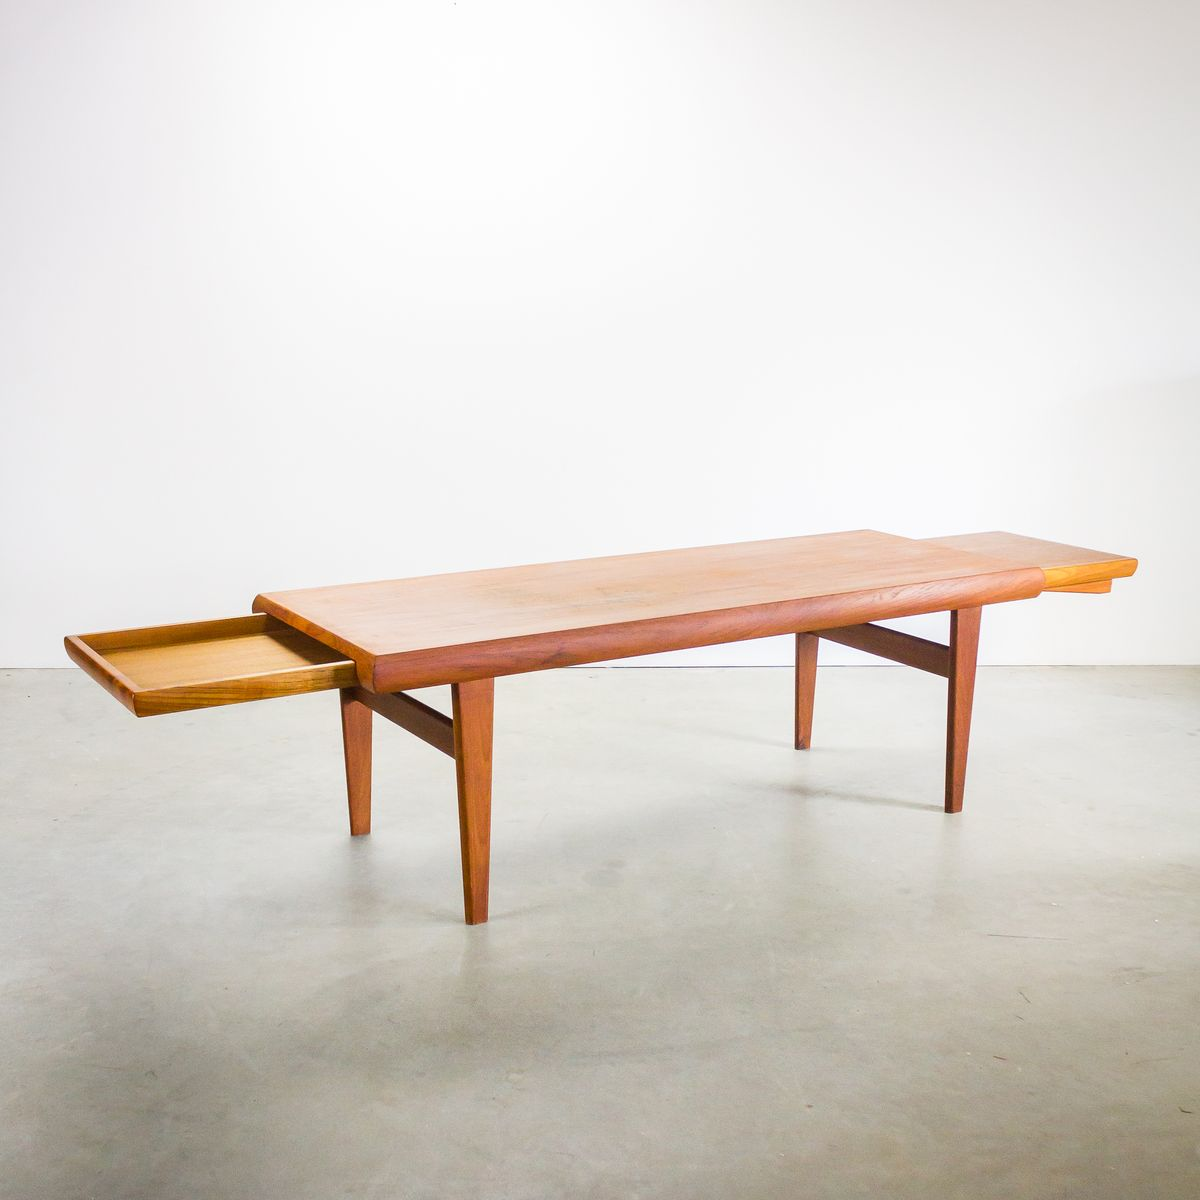 Danish Teak Coffee Table With Hidden Side Table From Trioh 1970s For Sale At Pamono